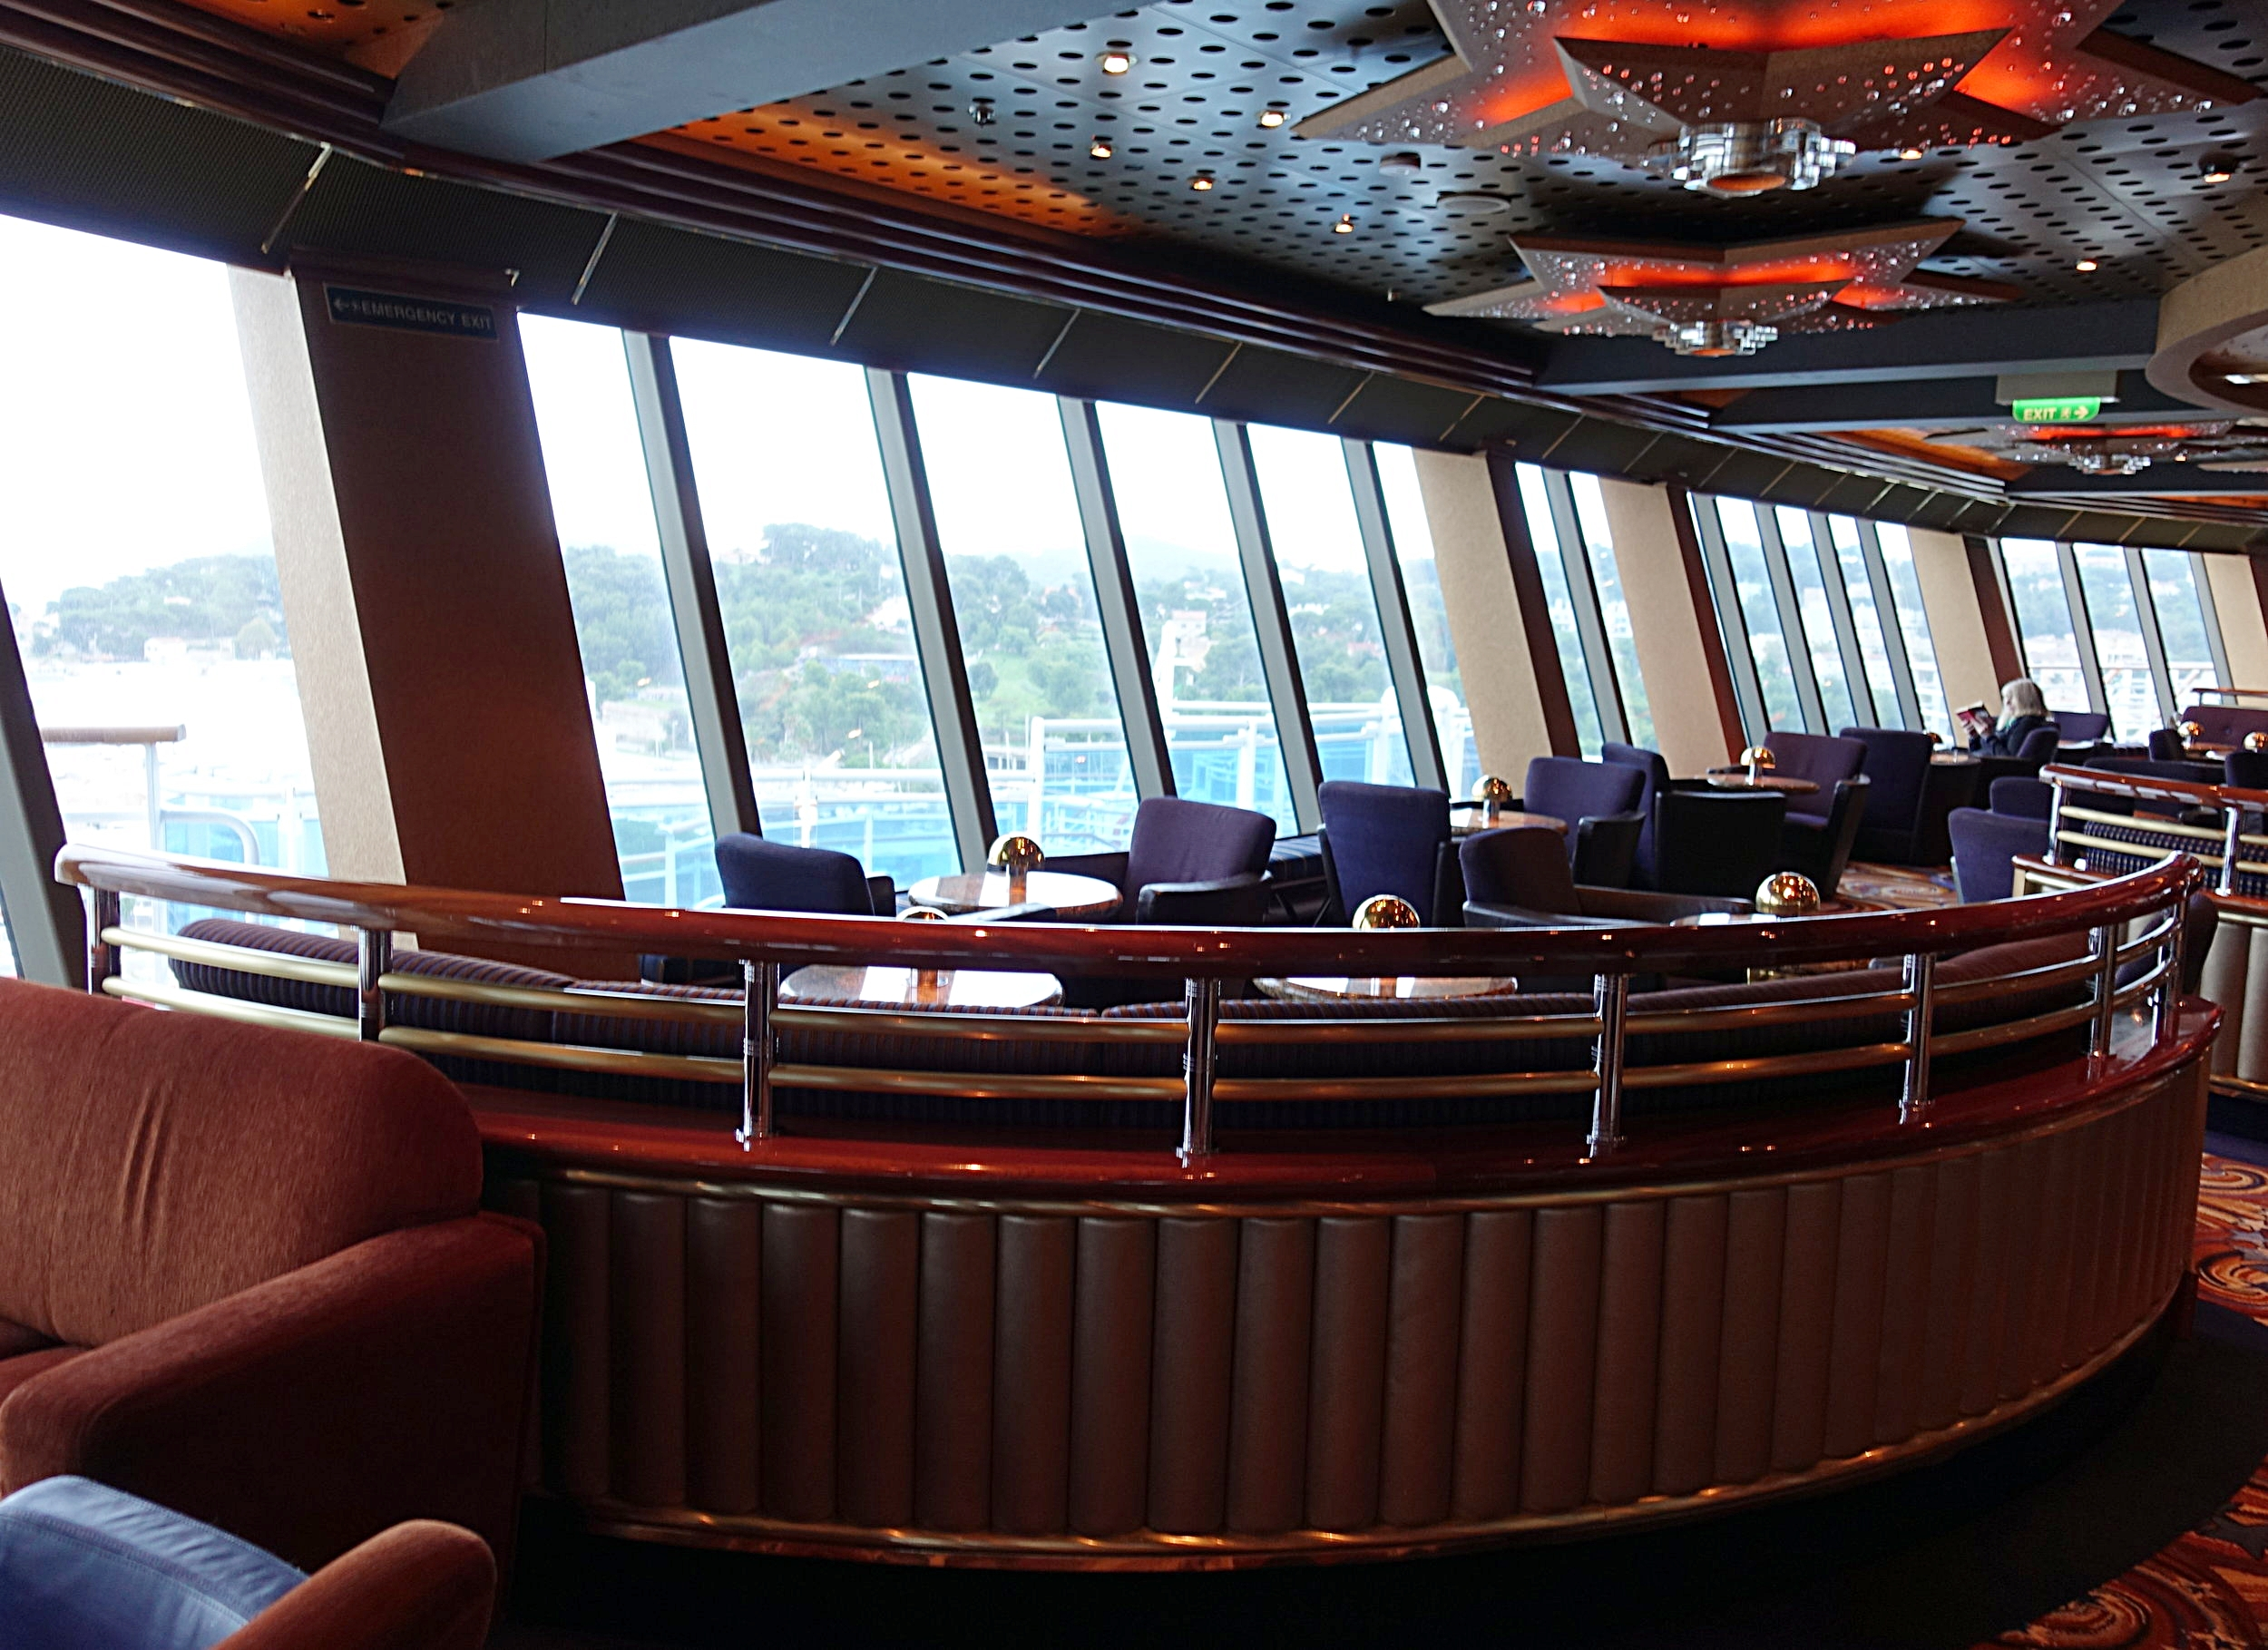 The panoramic aft windows in the Skywalker Lounge.